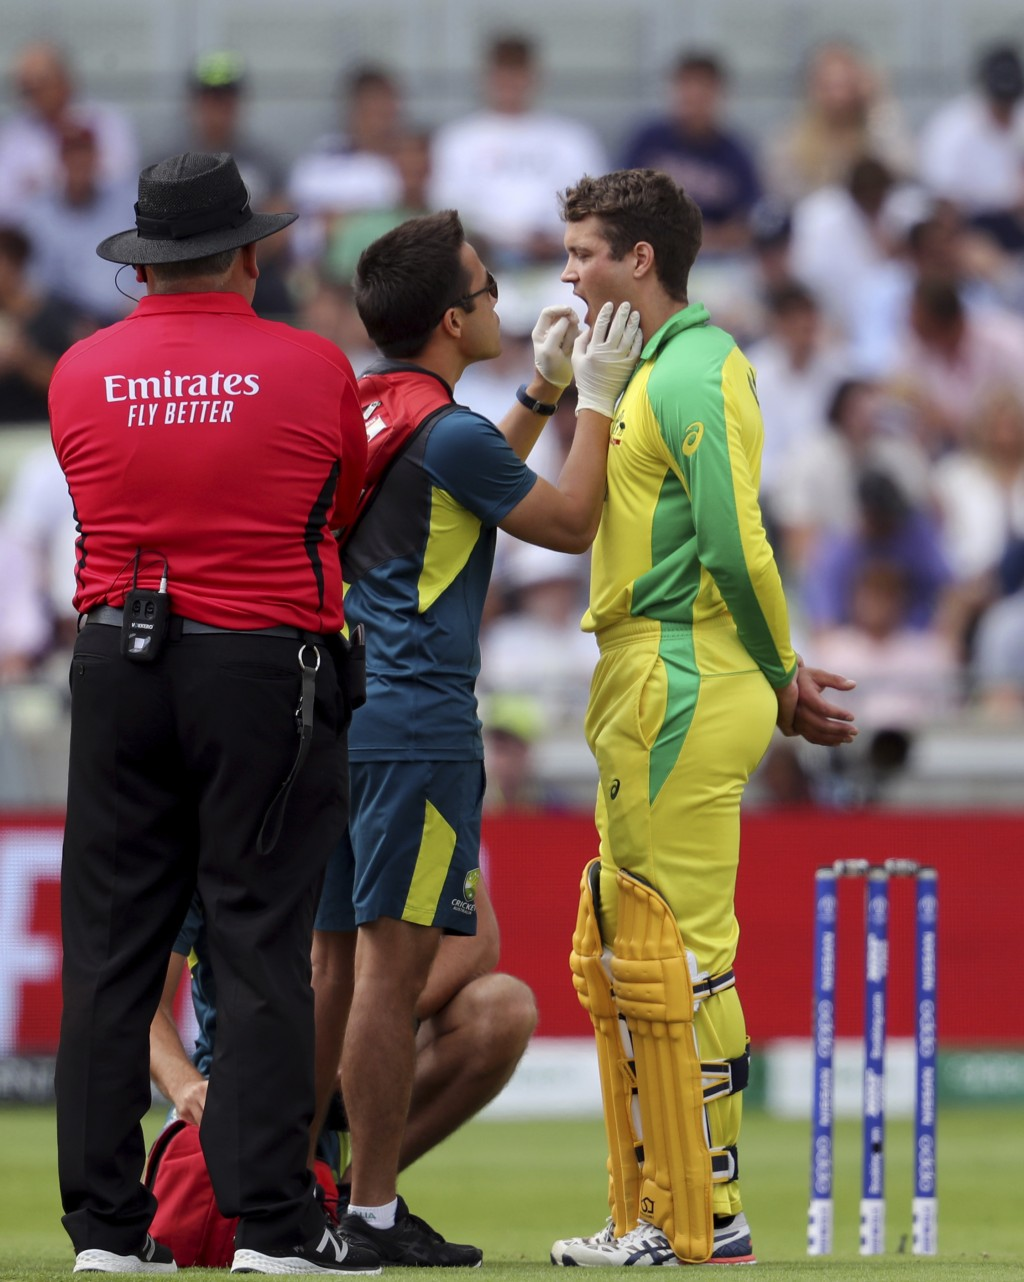 Australia's batsman Alex Carey, right, gets some treatment form a team-medic after hit on his chin by a delivery from England's Chris Woakes during th